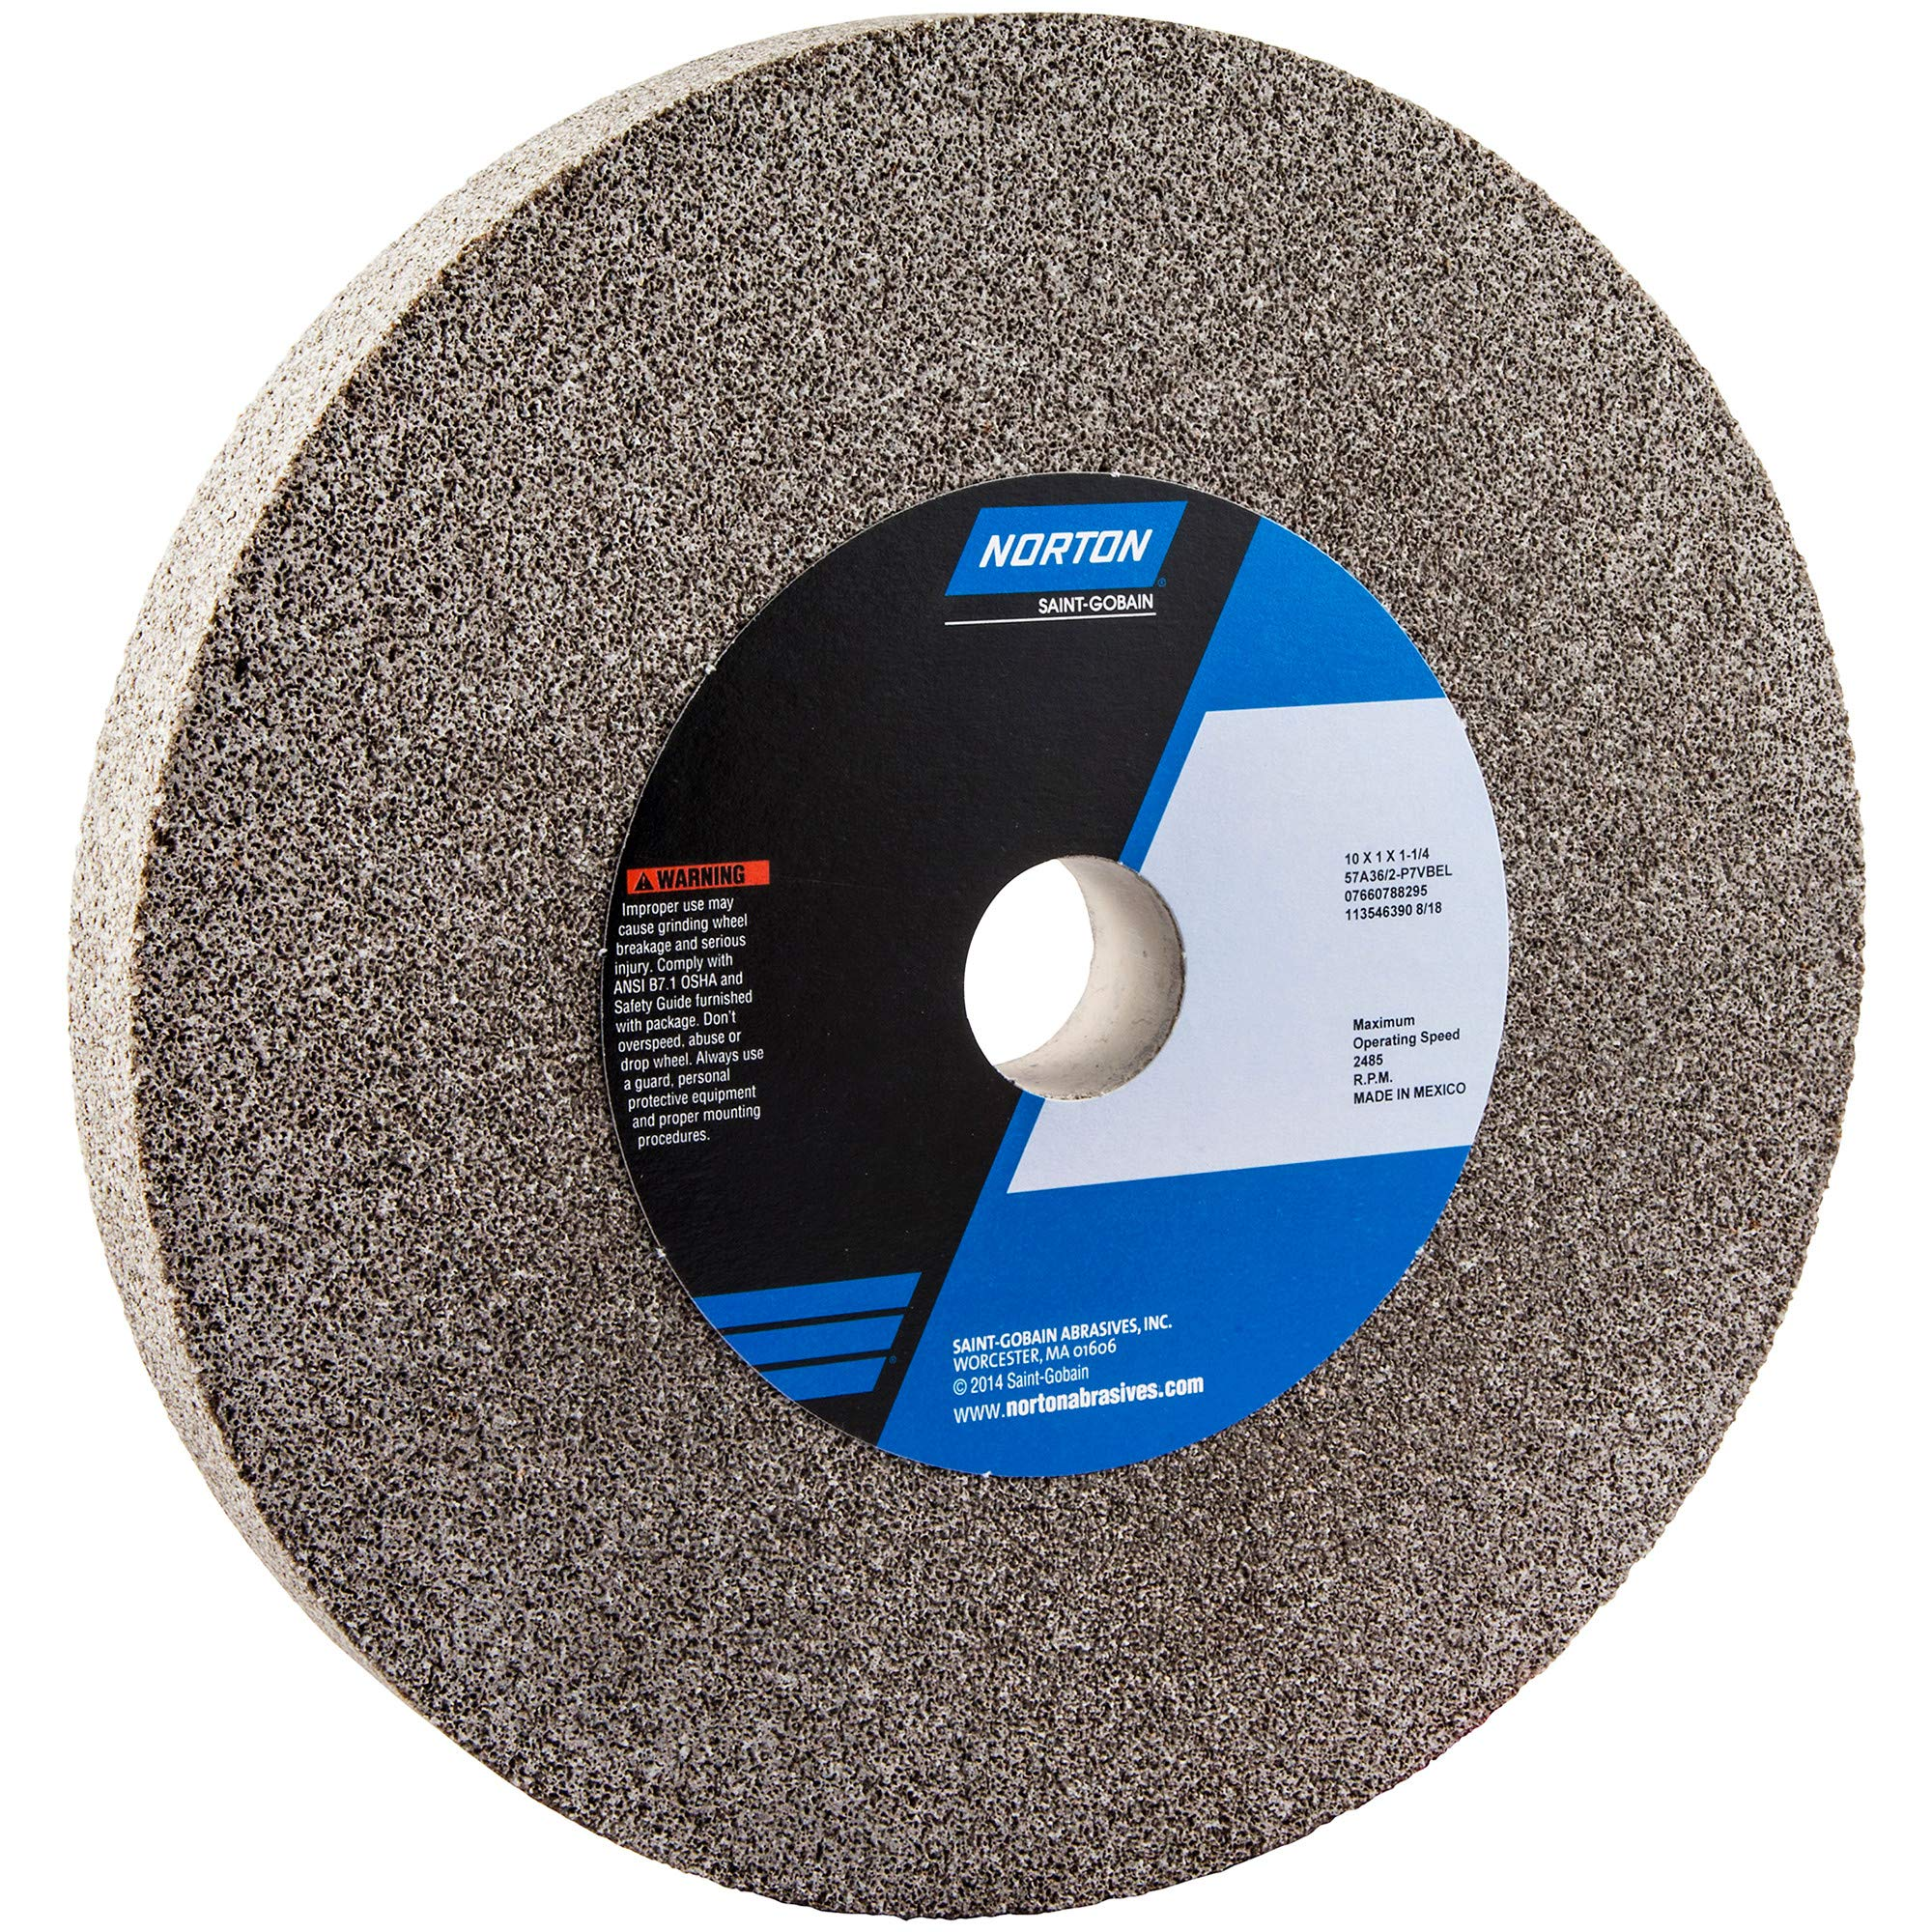 Norton Bench and Pedestal Abrasive Wheel, Type 01 Straight, Aluminum Oxide, 1-1/4'' Arbor, 10'' Diameter, 1'' Thickness, Coarse Grit (Pack of 1) by Norton Abrasives - St. Gobain